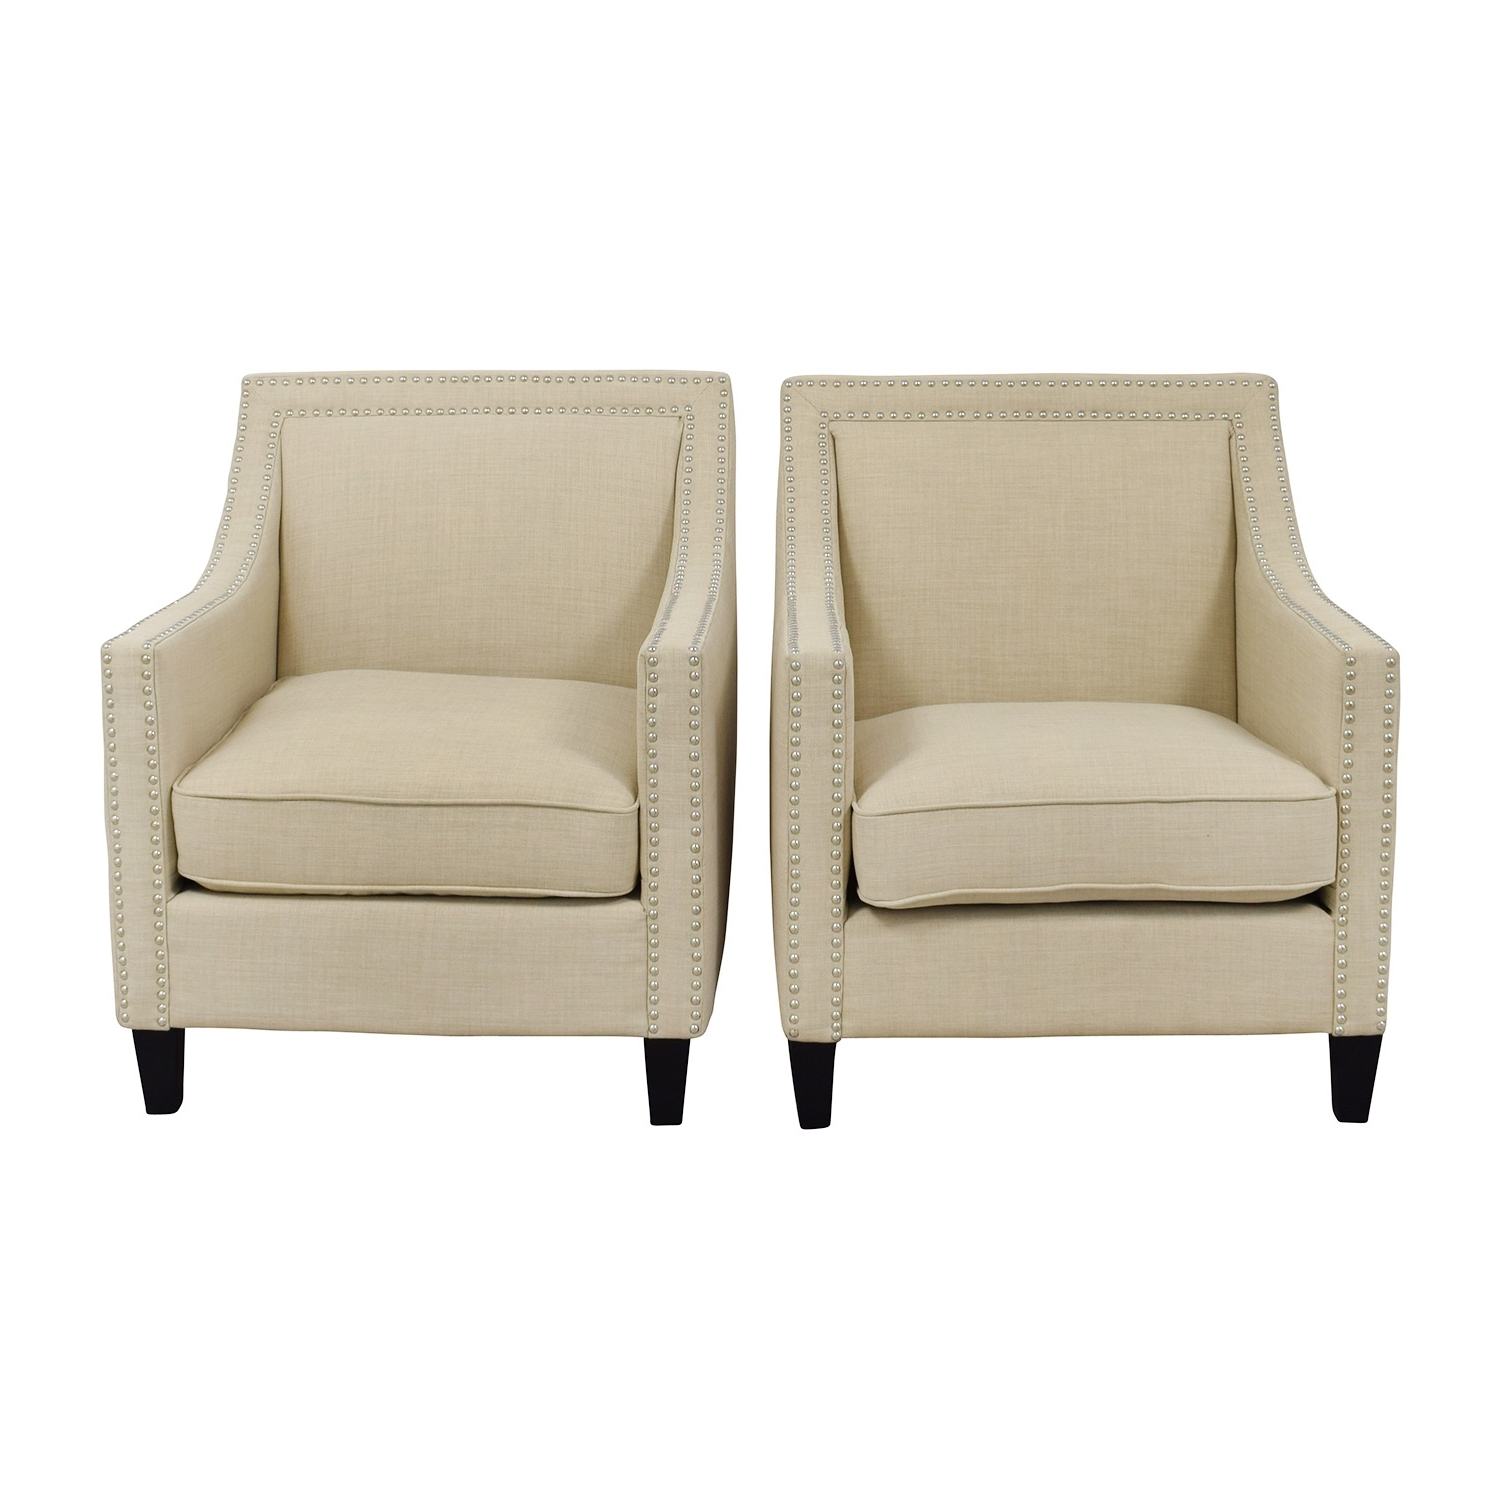 [%67% Off – Studded Beige Sofa Arm Chairs / Chairs Within Current Sofa Arm Chairs|Sofa Arm Chairs With Trendy 67% Off – Studded Beige Sofa Arm Chairs / Chairs|Most Current Sofa Arm Chairs Inside 67% Off – Studded Beige Sofa Arm Chairs / Chairs|Recent 67% Off – Studded Beige Sofa Arm Chairs / Chairs For Sofa Arm Chairs%] (View 7 of 20)